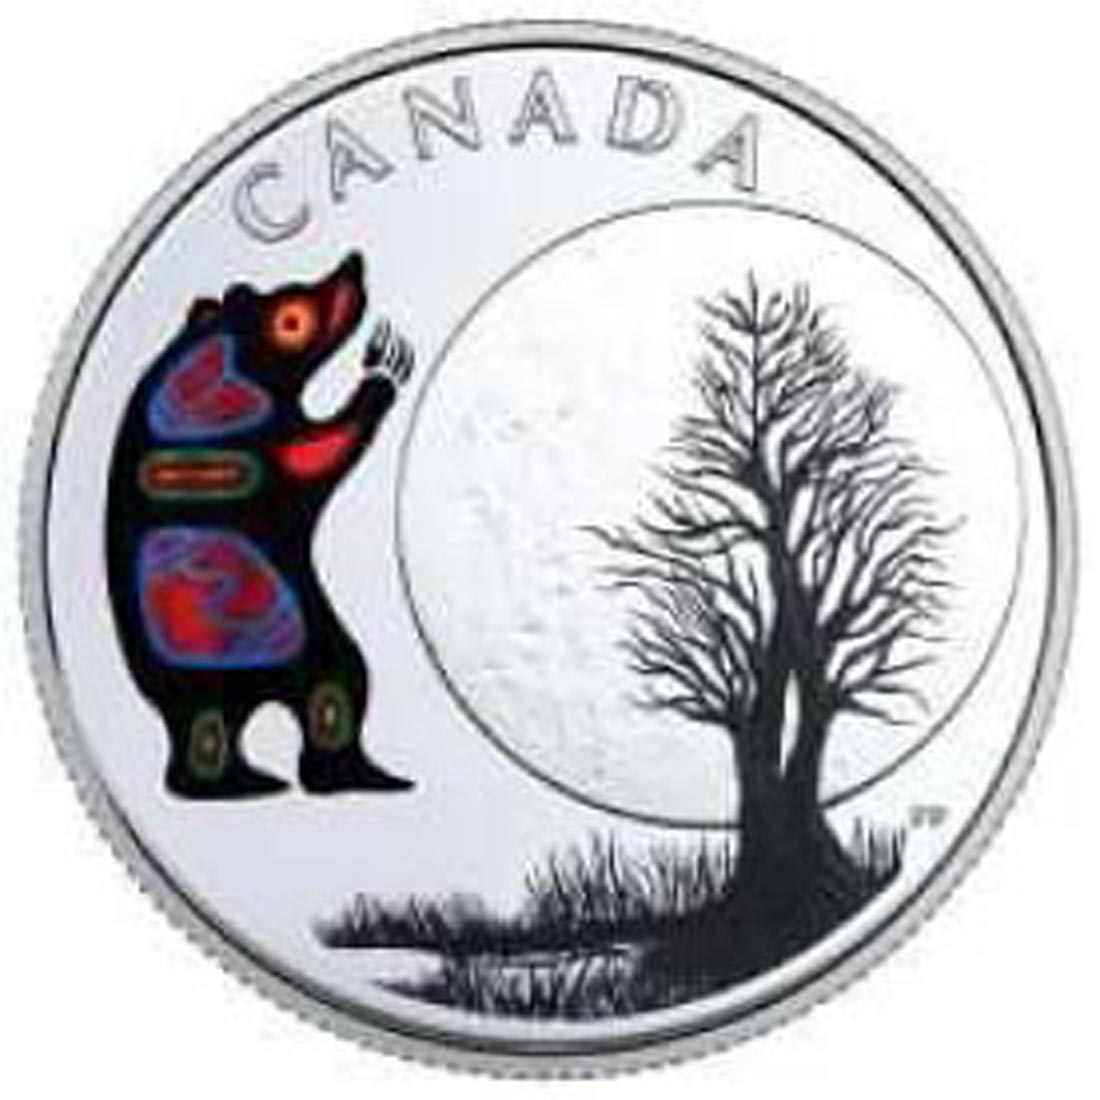 Kanada : 3 Dollar Bear Moon - Die 13 Lehren von Grandmother Moon  2018 PP